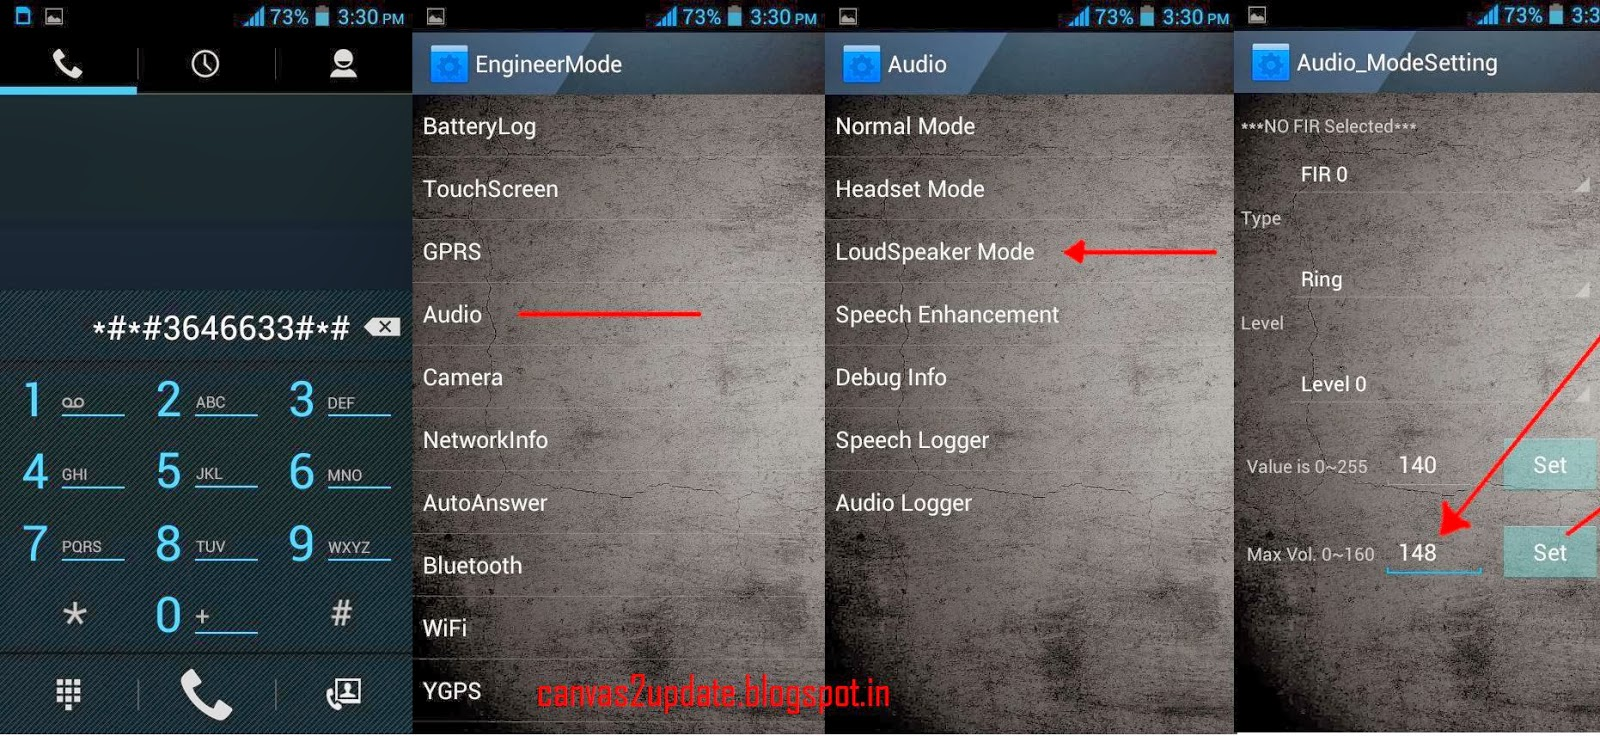 How To Increase Loudspeaker Volume On Micromax Canvas 2 | Micromax